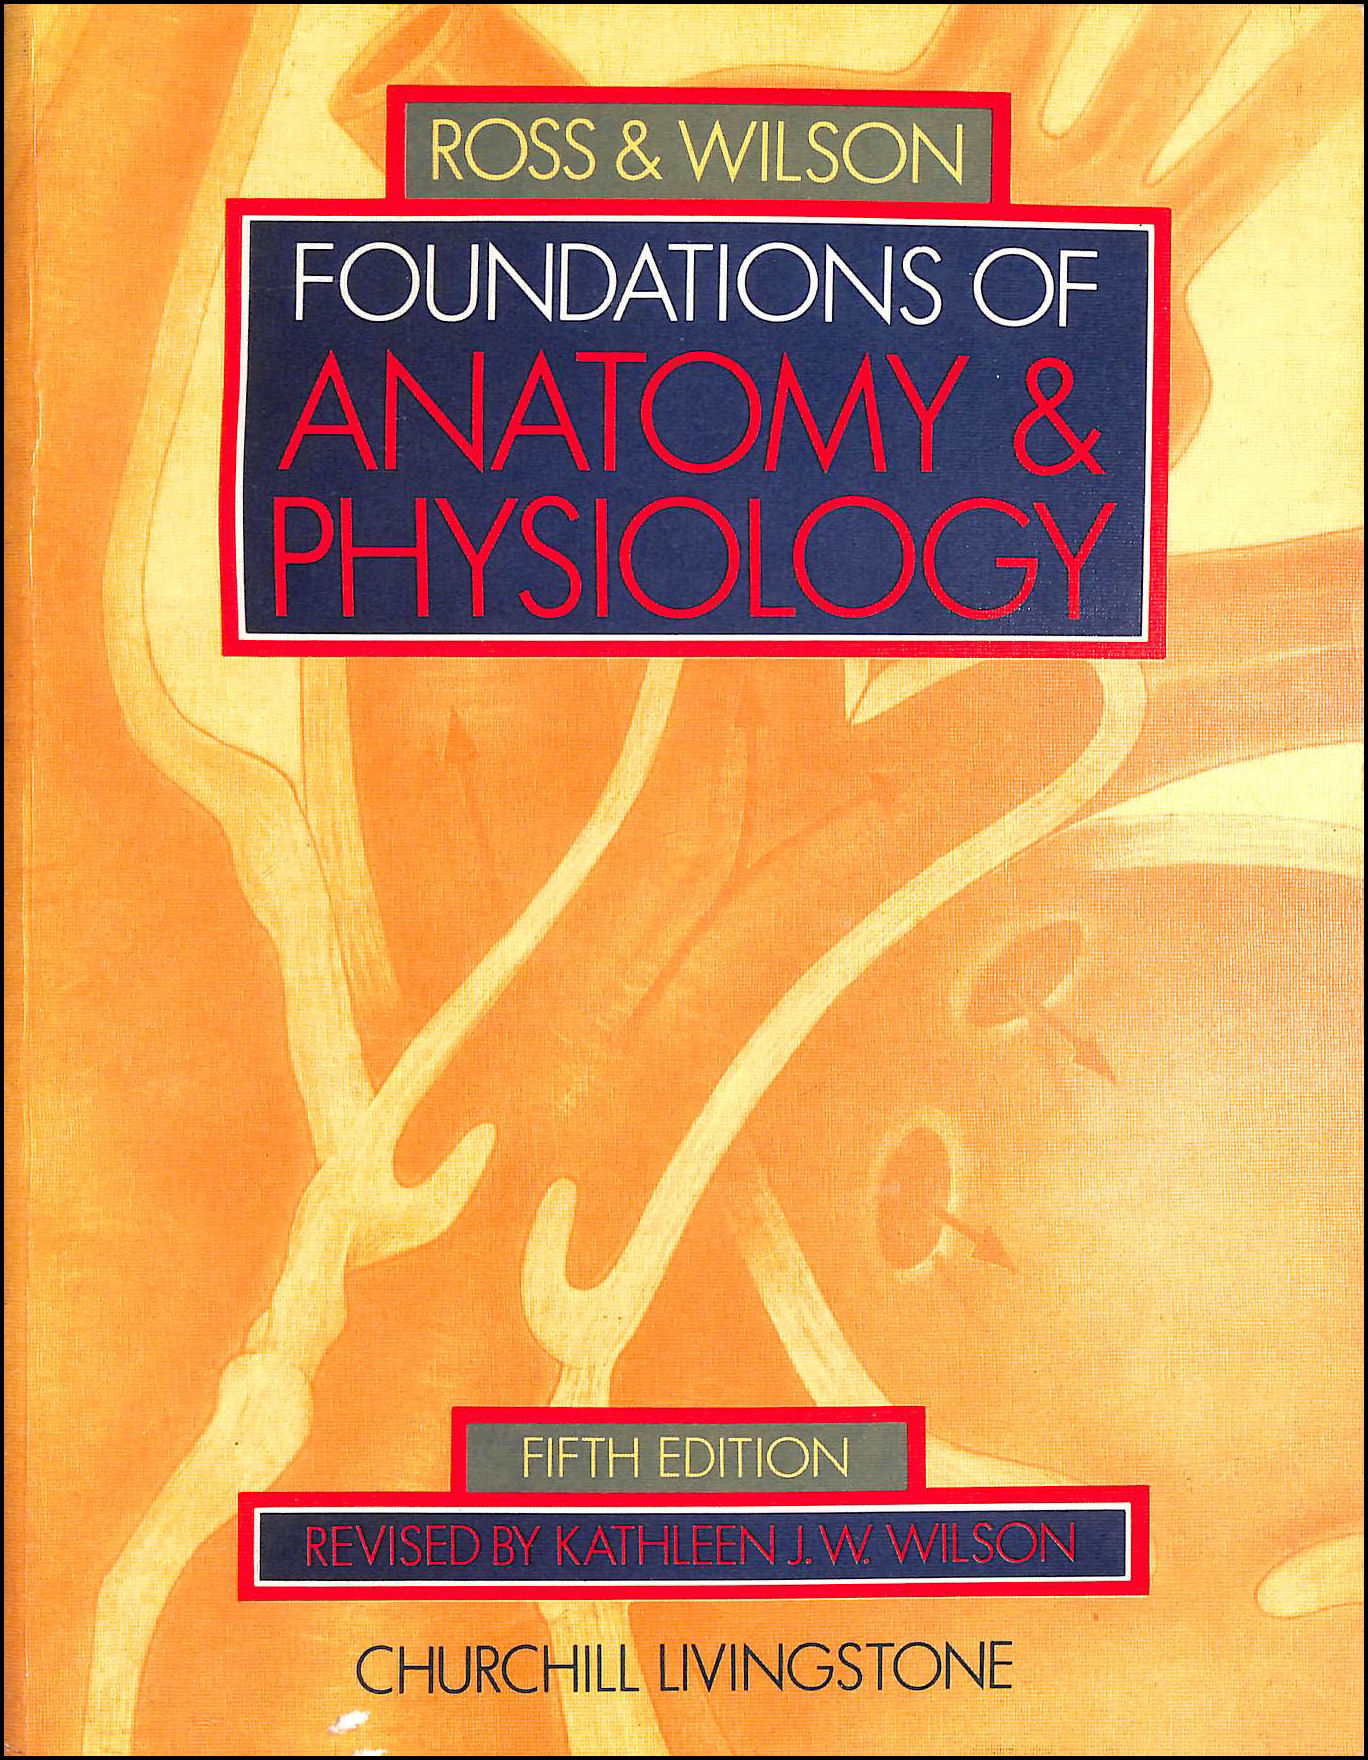 Foundations of Anatomy and Physiology, Ross, Janet S.; Wilson, Kathleen J.W.